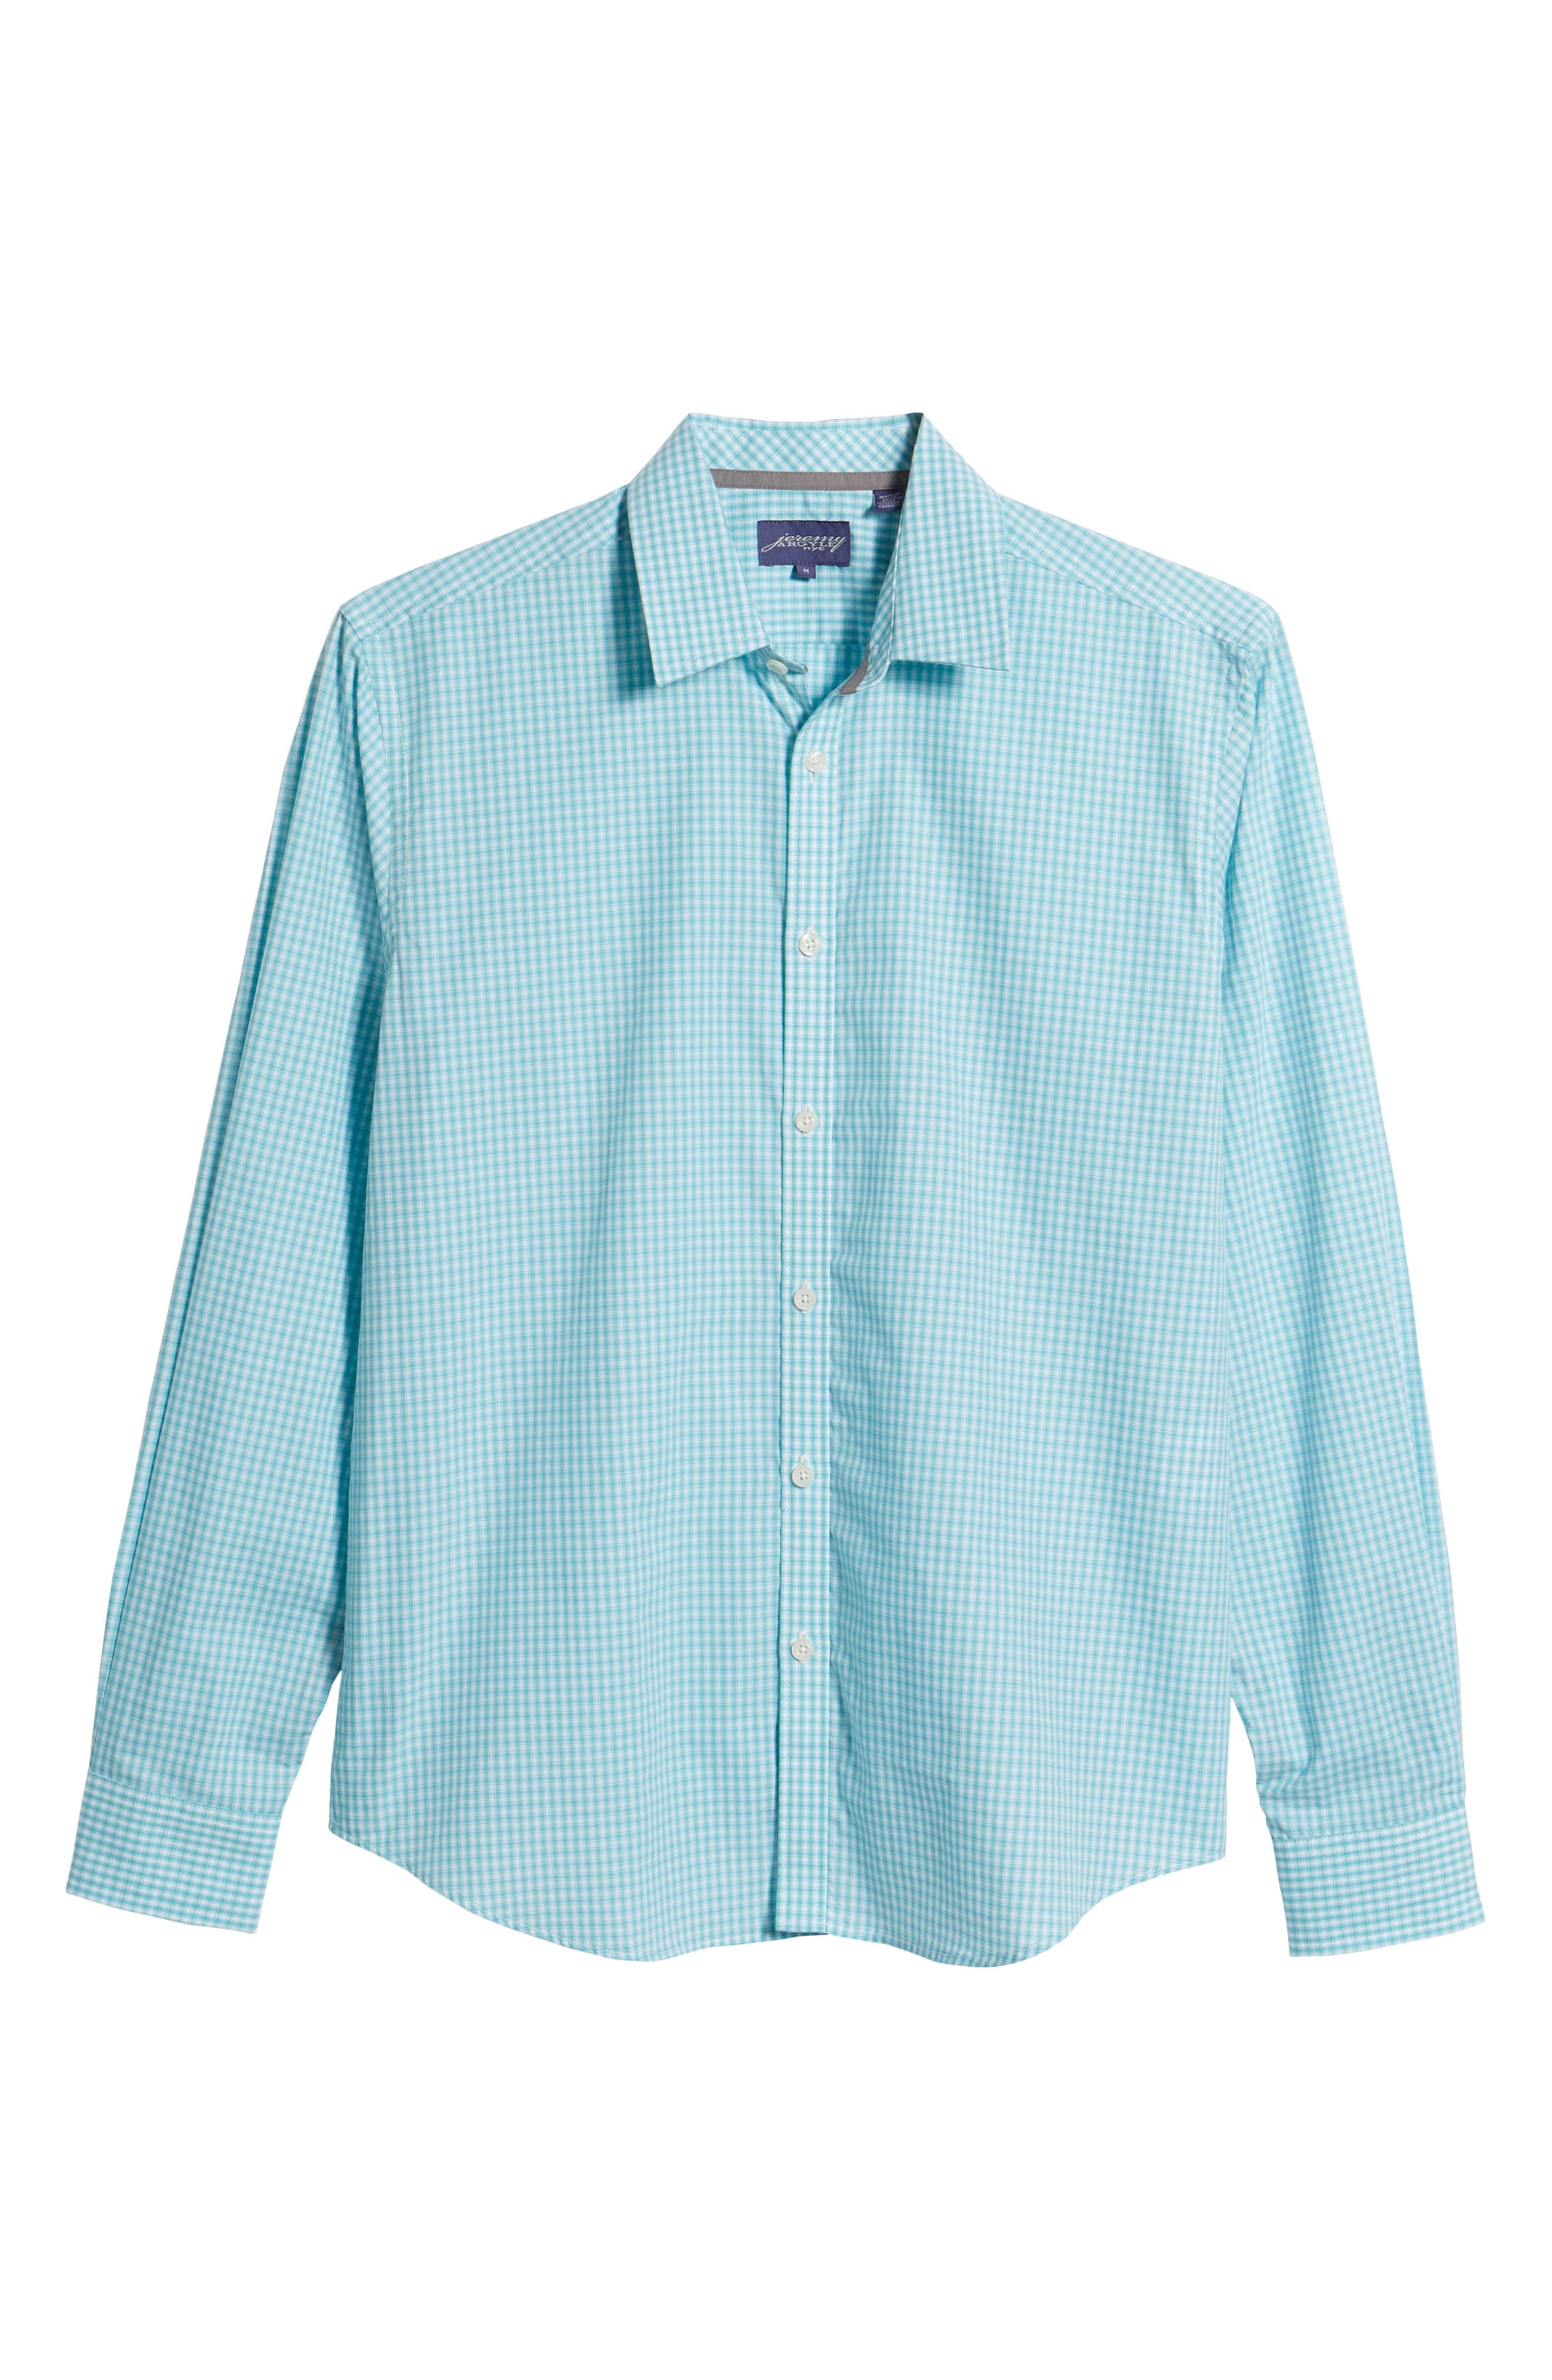 Comfort Fit Check Sport Shirt,                             Alternate thumbnail 6, color,                             Turquoise